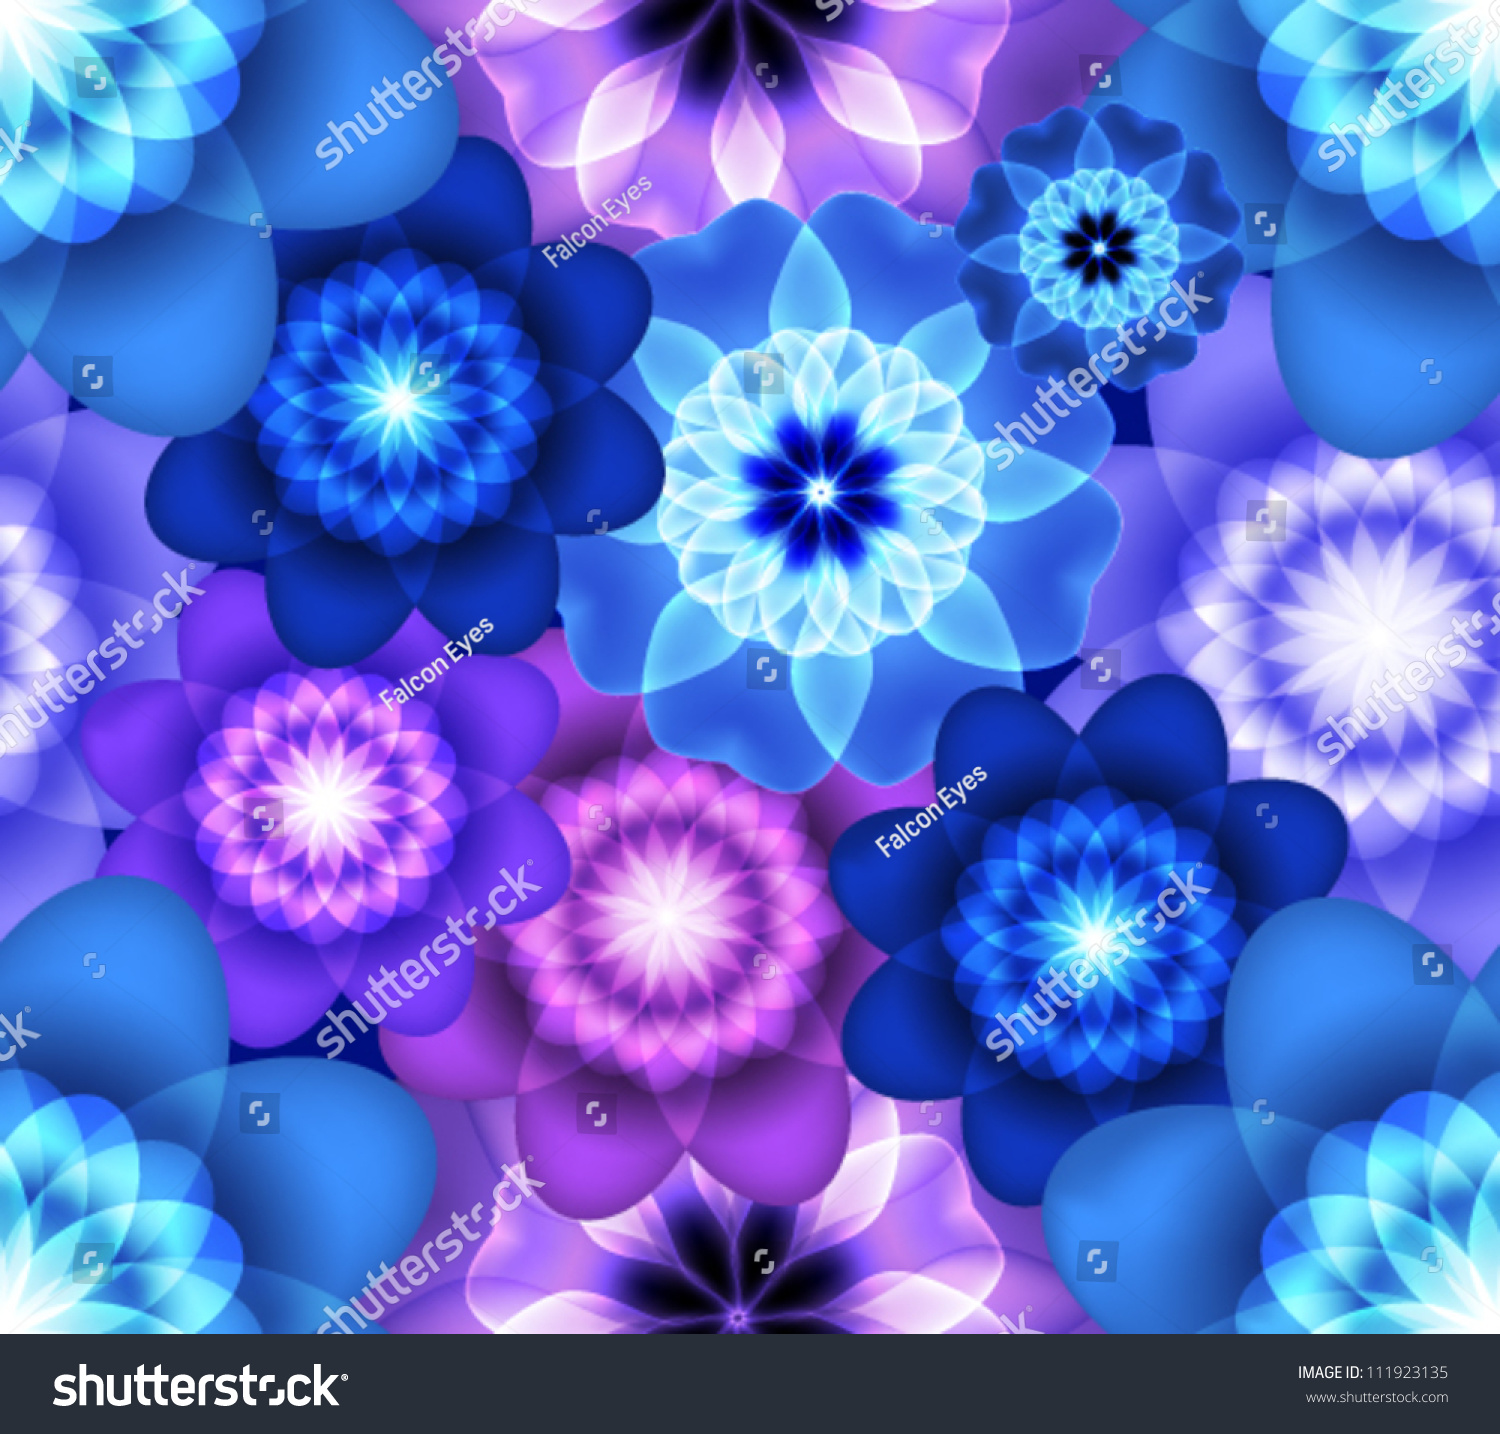 Bright seamless pattern blue purple flowers stock vector 111923135 bright seamless pattern with blue and purple flowers izmirmasajfo